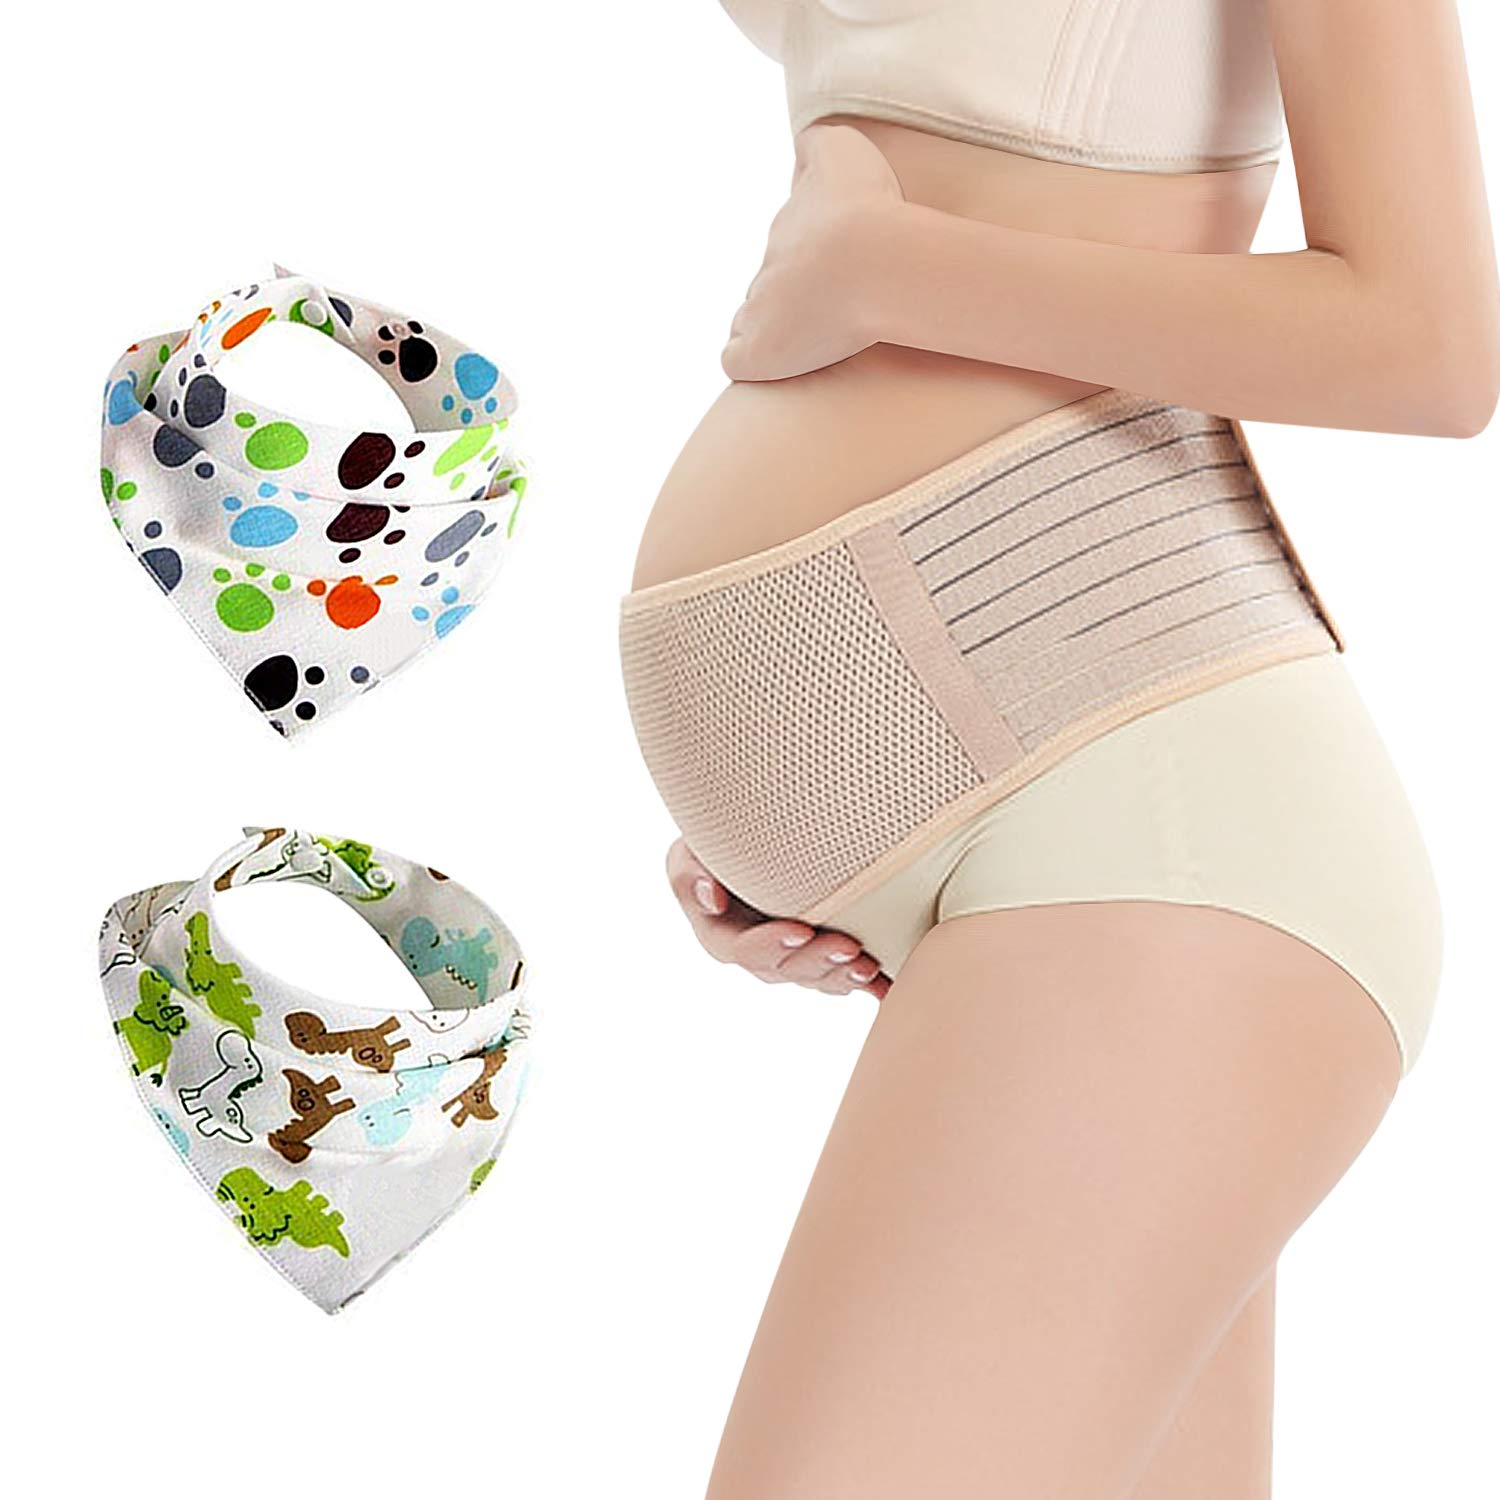 Maternity Belt with 2 Baby Bibs, Support Belly for Pregnancy Women with Back & Pelvic Pain, Plus Size, Beige